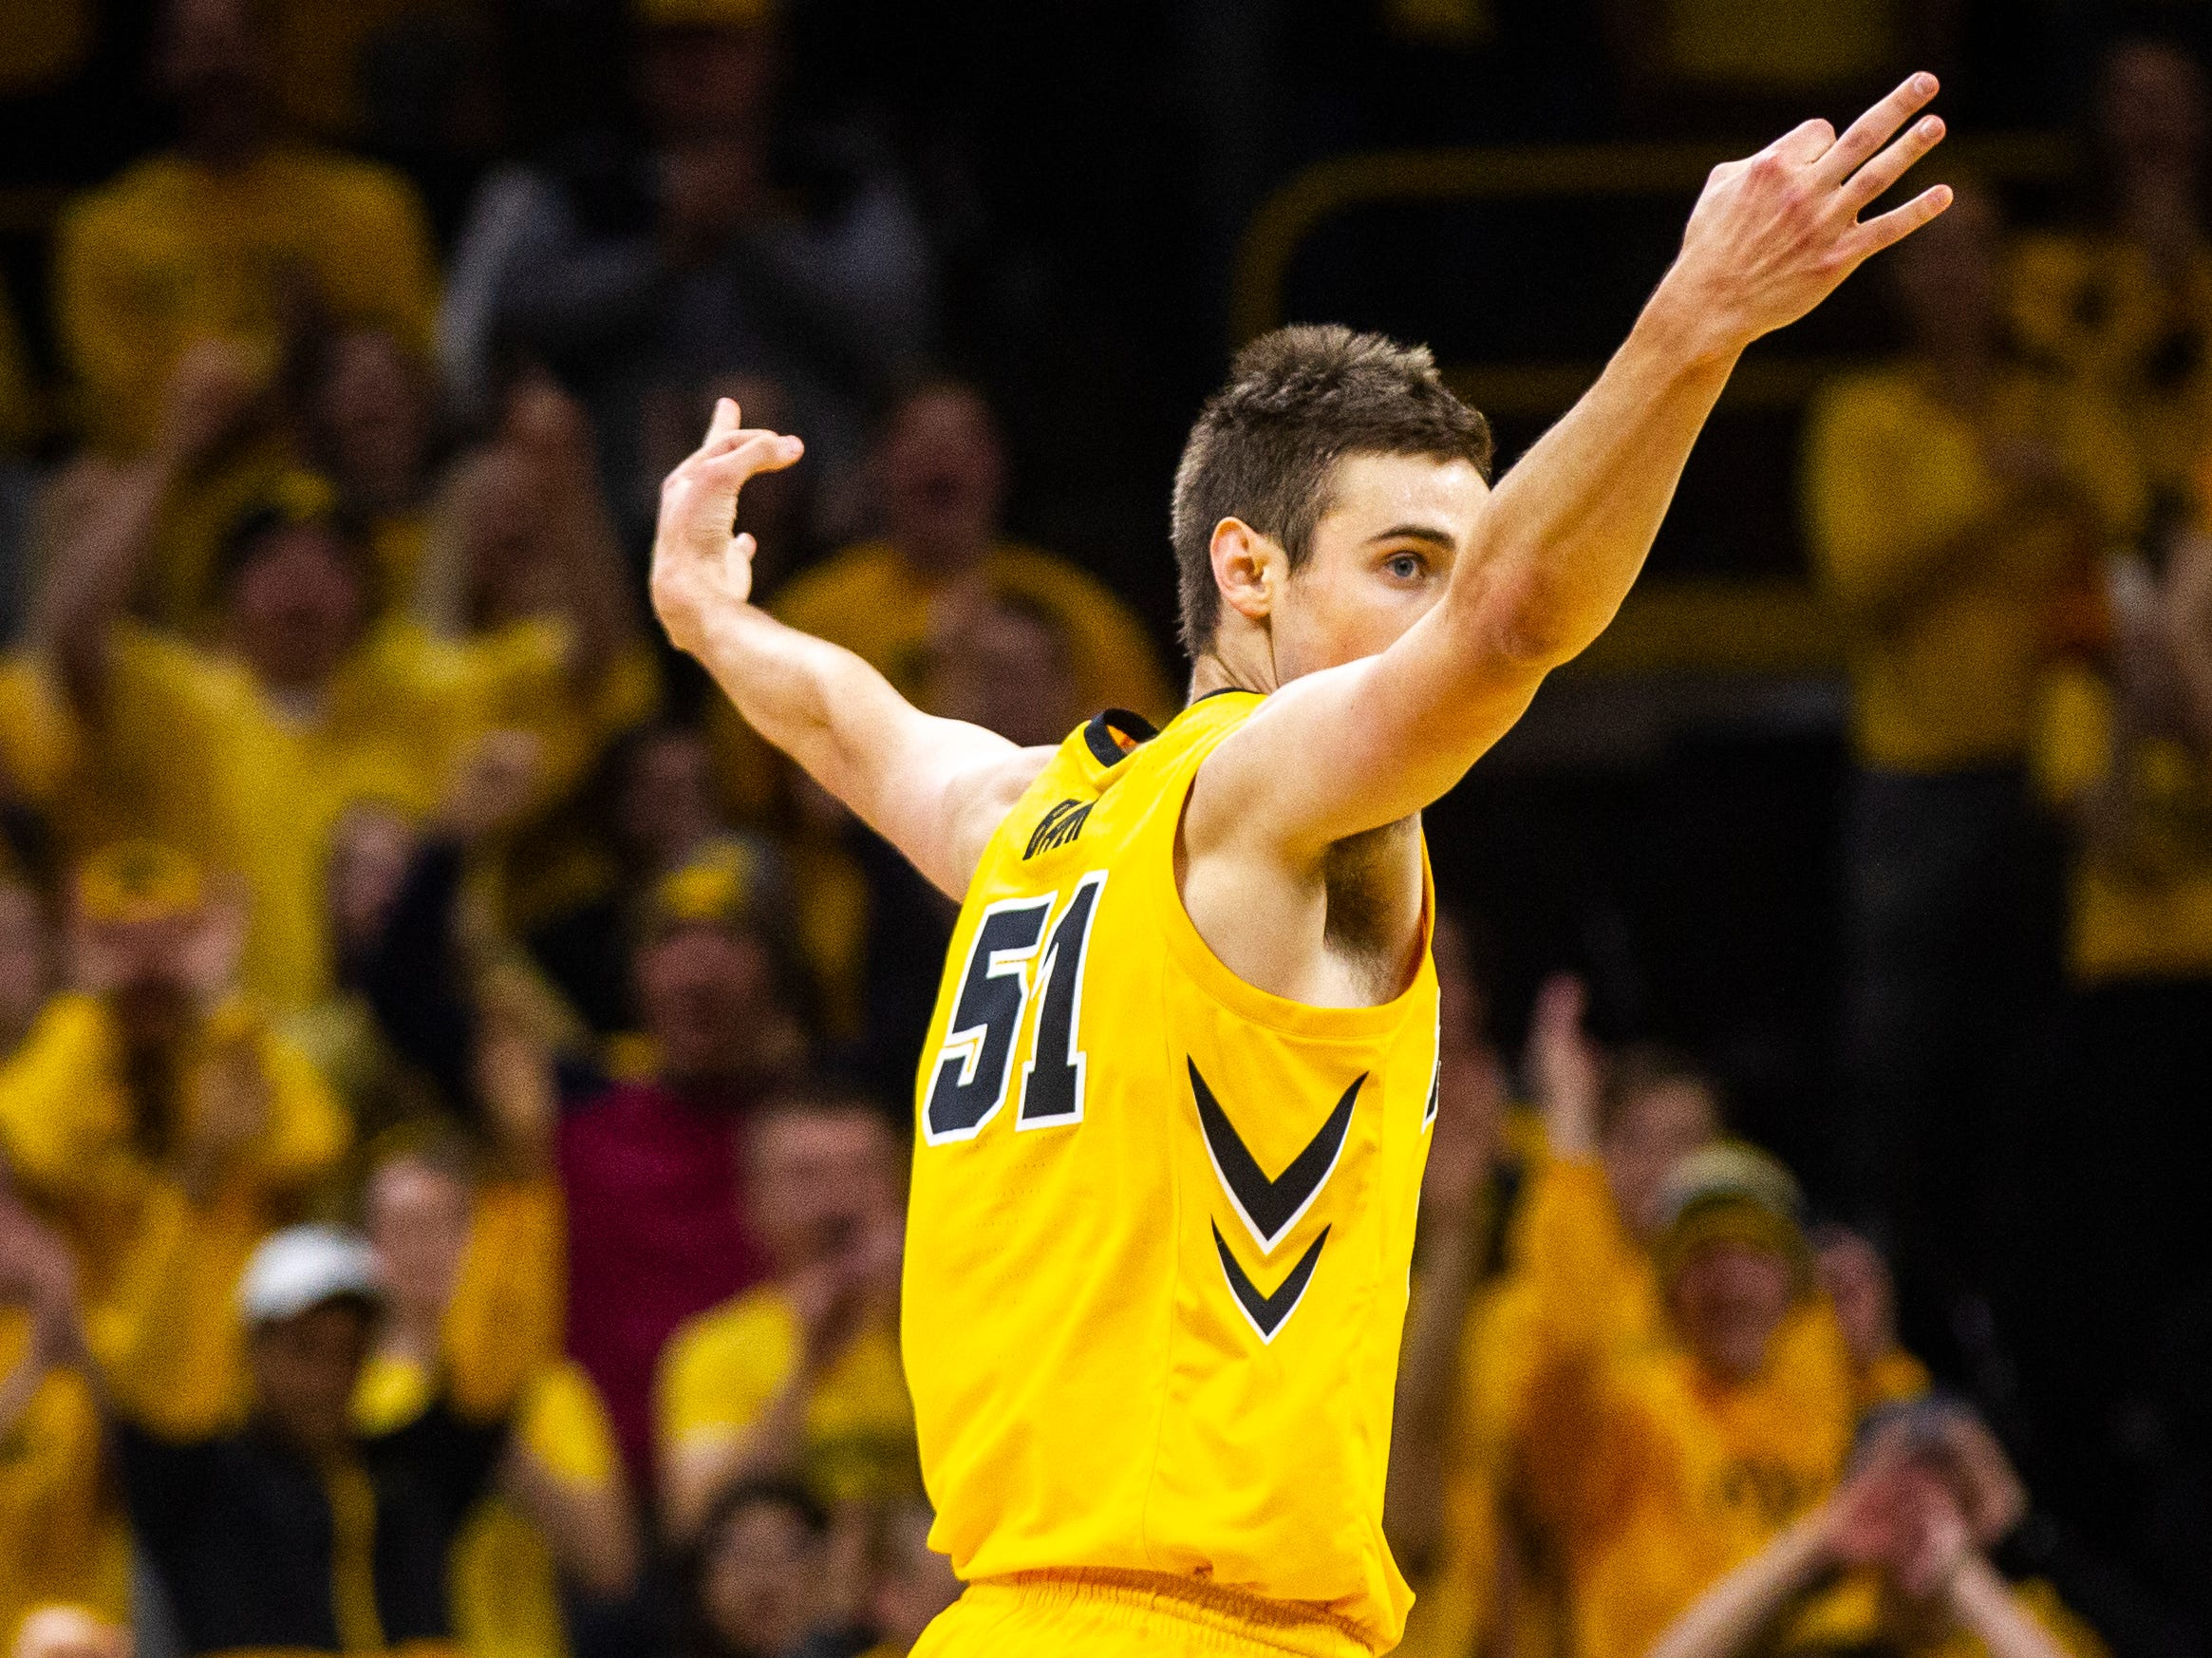 Iowa forward Nicholas Baer (51) celebrates after making a 3-point basket during a NCAA Big Ten Conference men's basketball game on Friday, Nov. 30, 2018, at Carver-Hawkeye Arena in Iowa City.